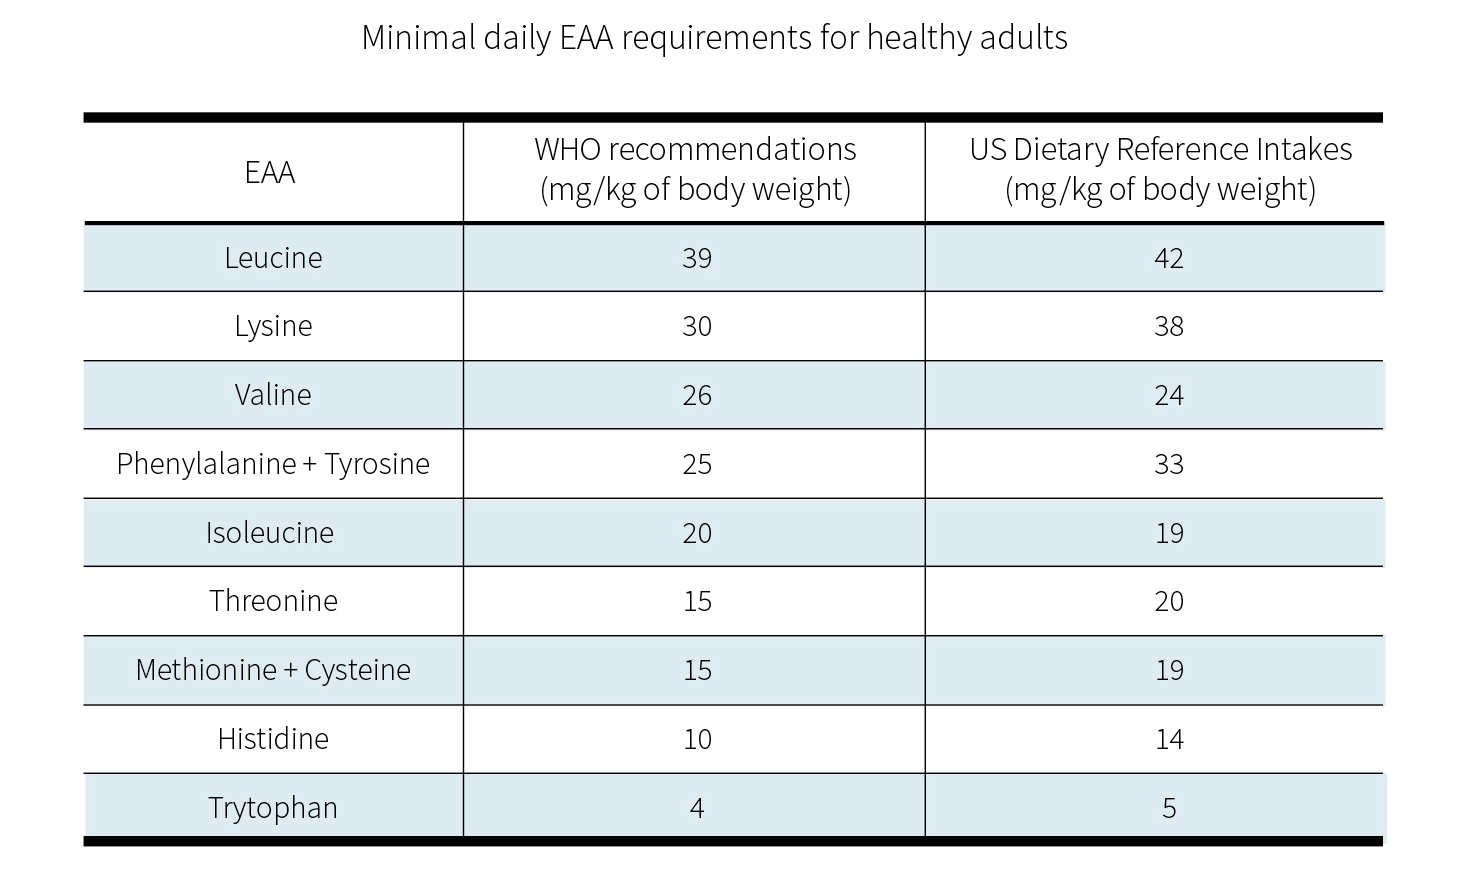 Minimal daily EAA requirements for healthy adults